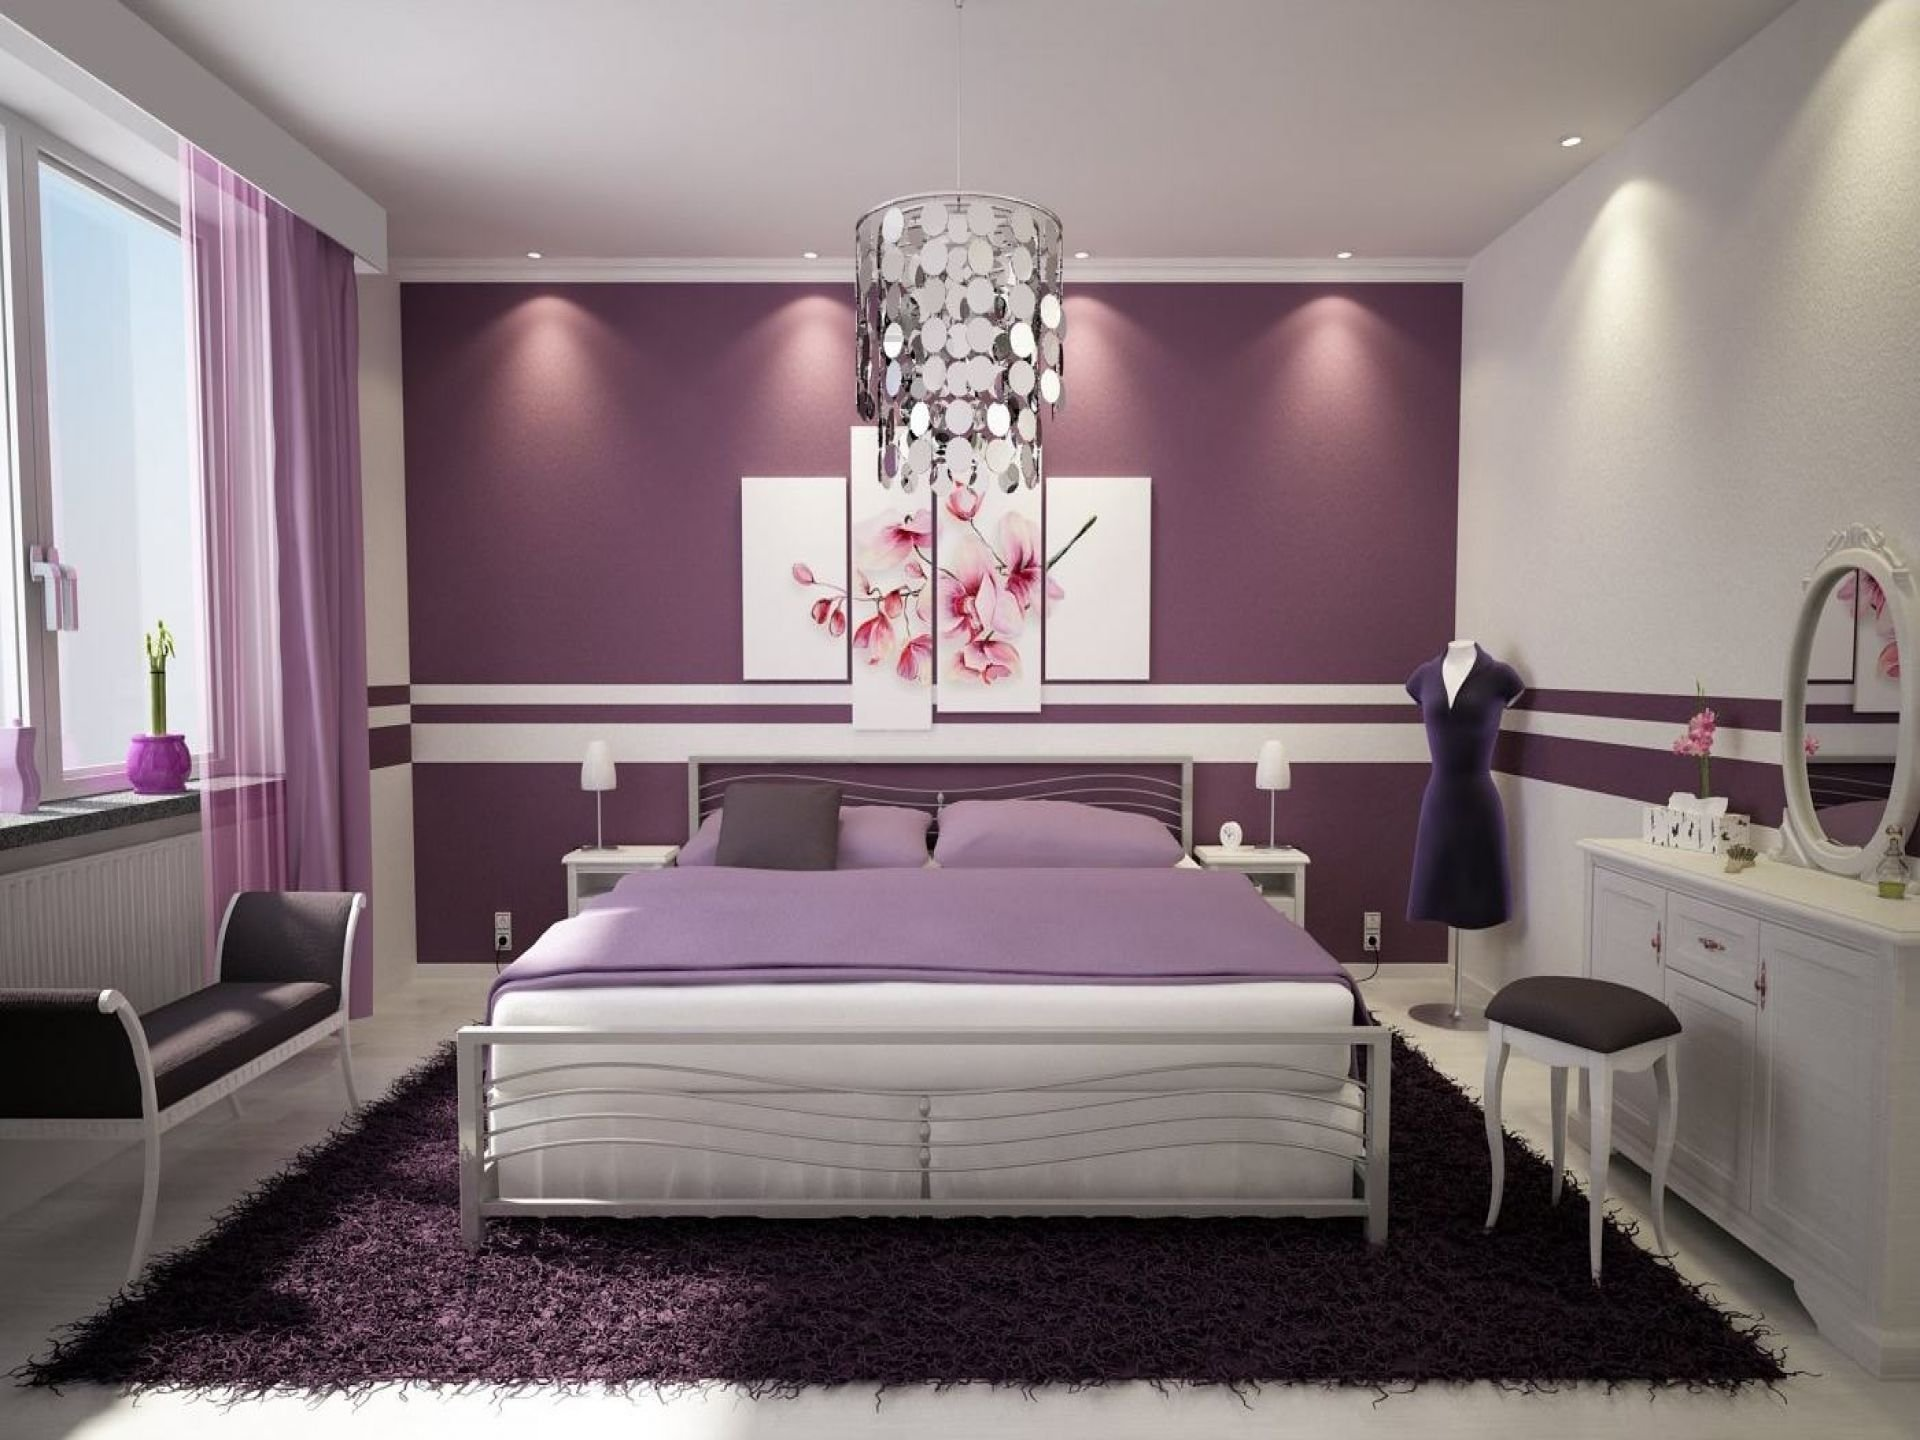 10 Fabulous Purple And Black Bedroom Ideas 23 inspirational purple interior designs you must see 2